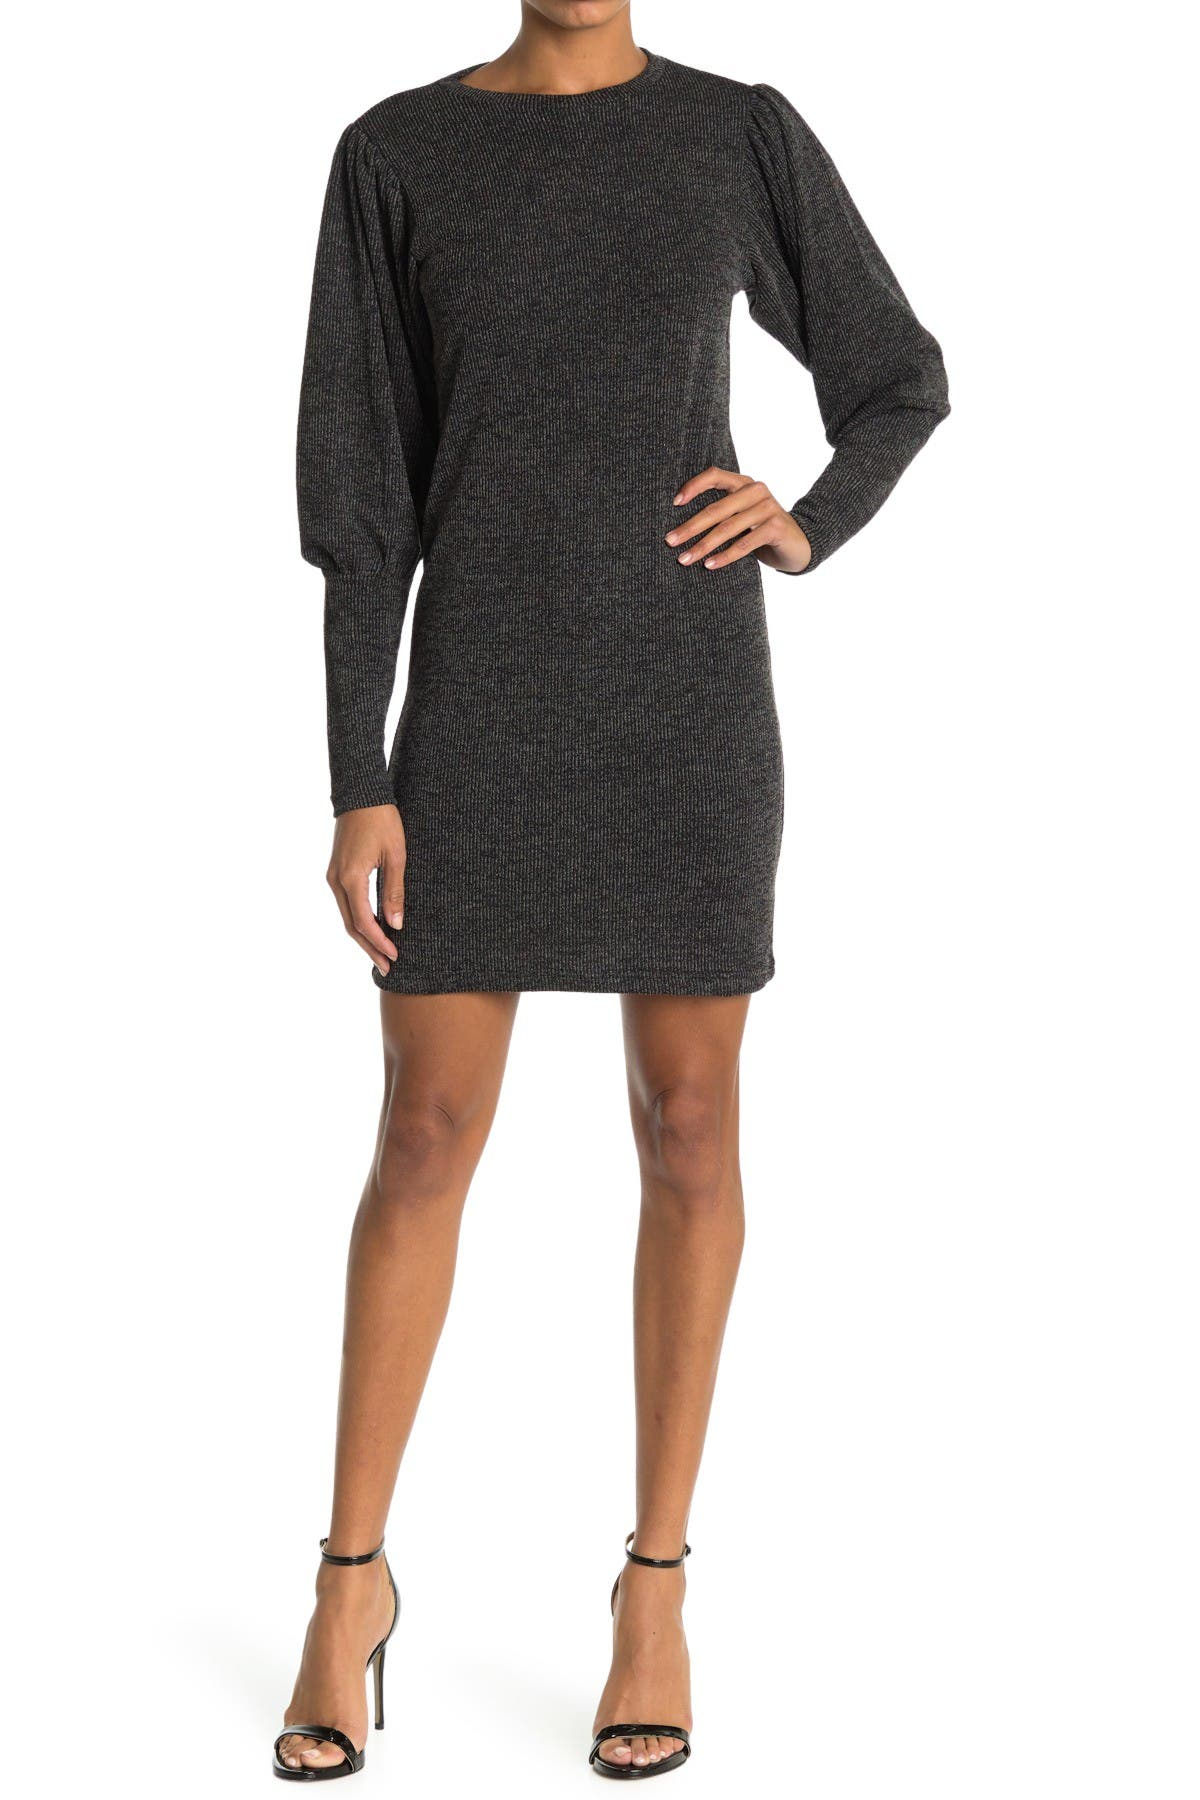 Image of Cloth By Design Rib Balloon Sleeve Hacci Sweater Dress